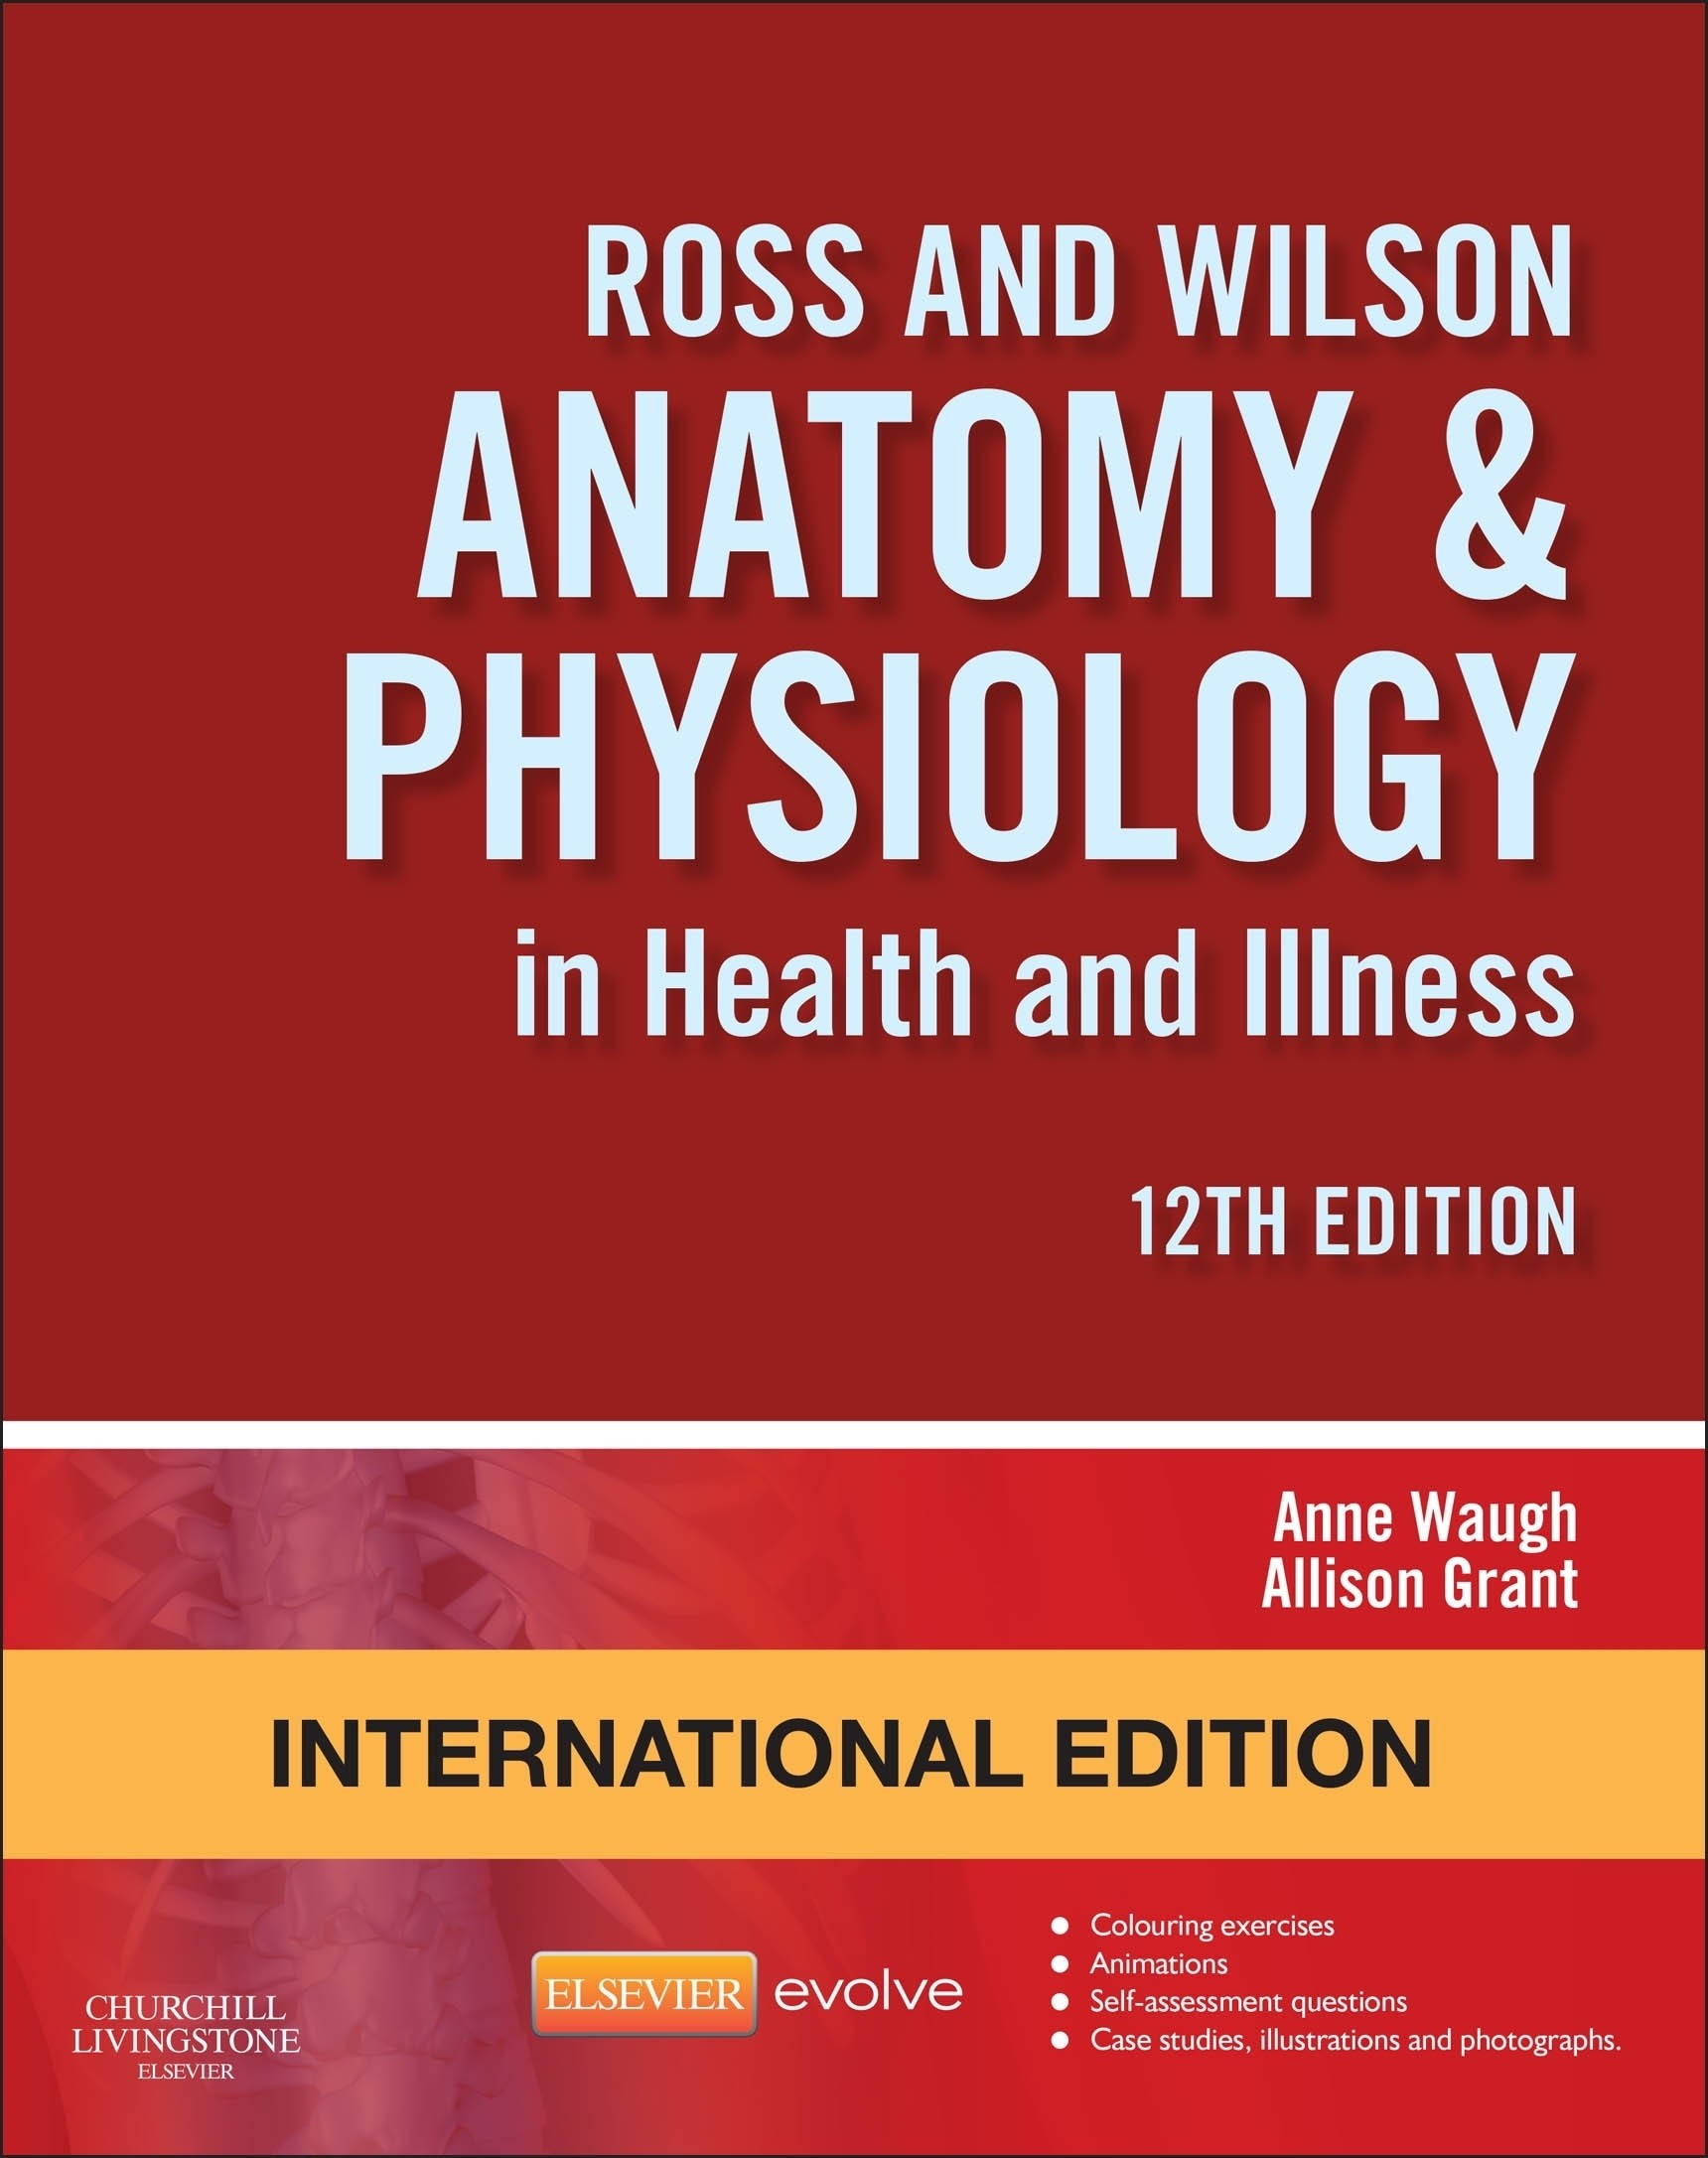 Ross and wilson anatomy and physiology book pdf - Nolapetitt.comli.com